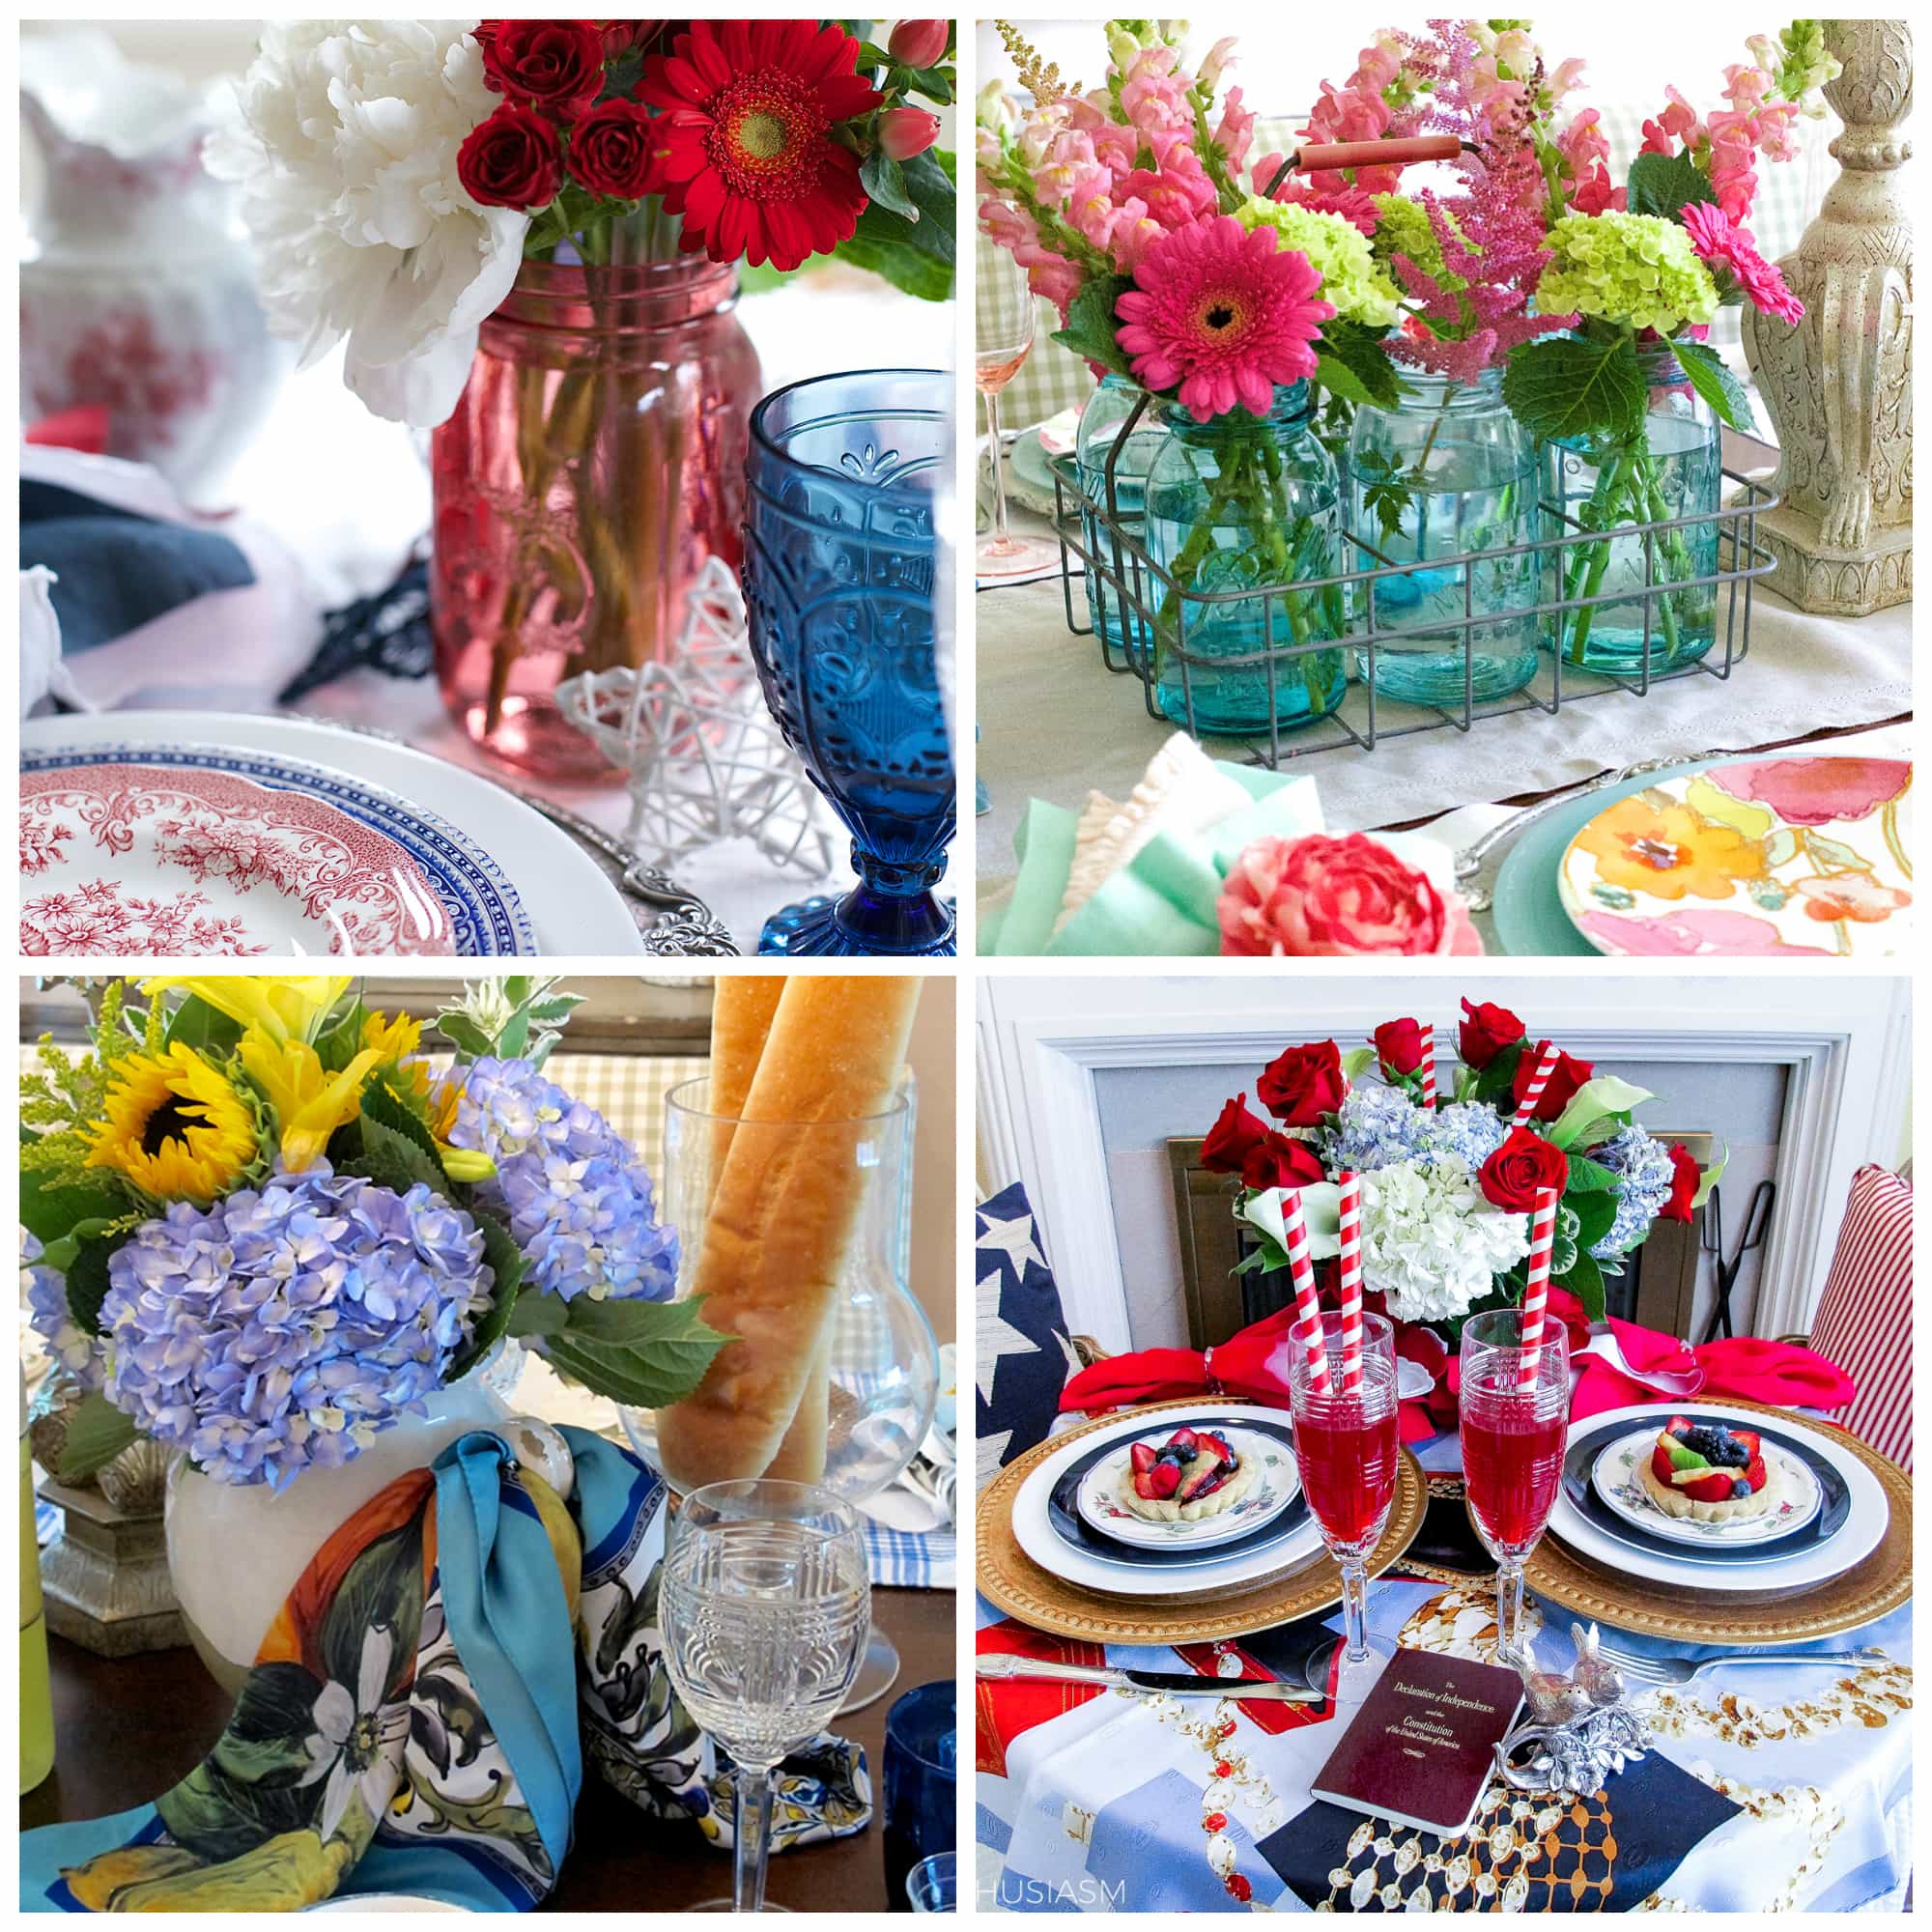 Summer party decorations 6 colorful tablescape ideas for Decoration ideas